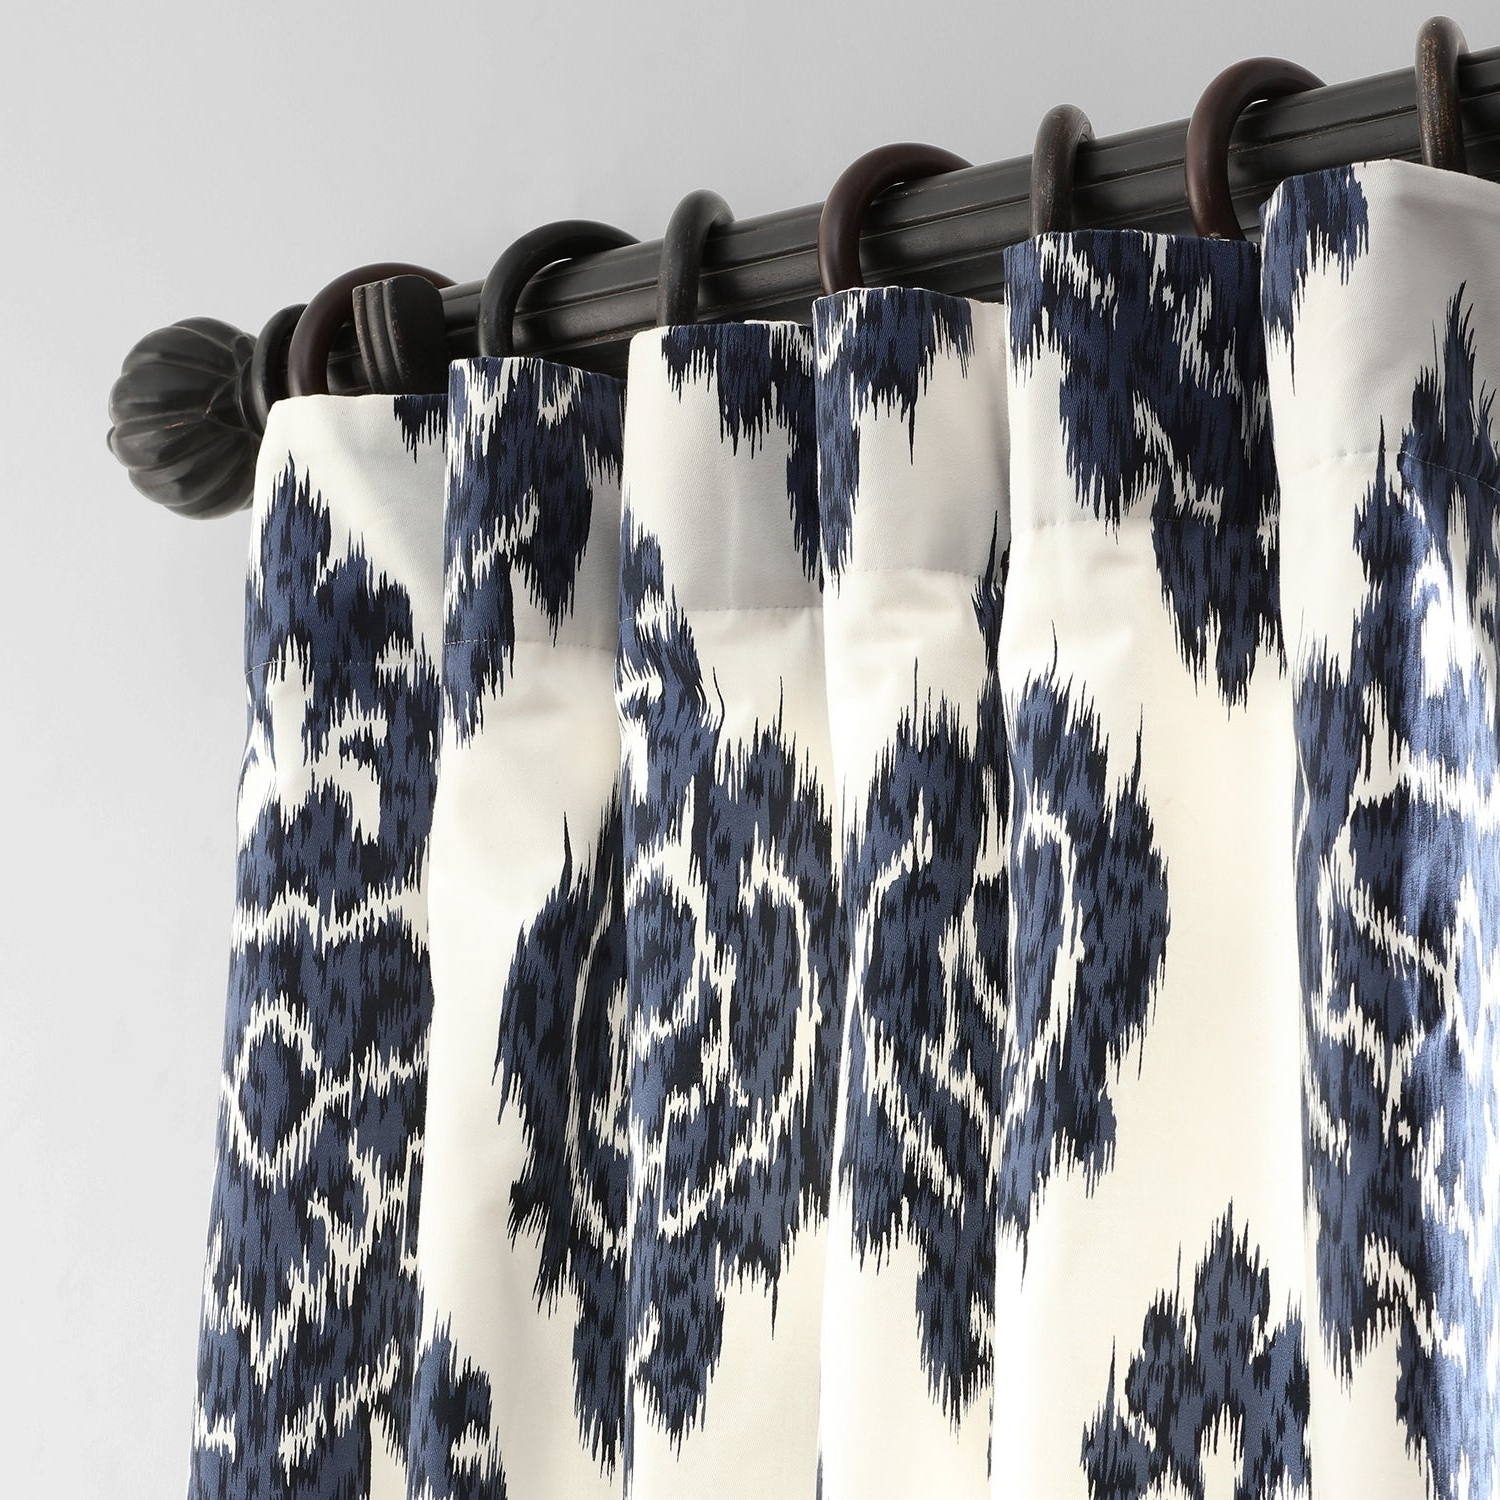 Exclusive Fabrics Ikat Blue Printed Cotton Curtain Panel Intended For Popular Ikat Blue Printed Cotton Curtain Panels (Gallery 7 of 20)